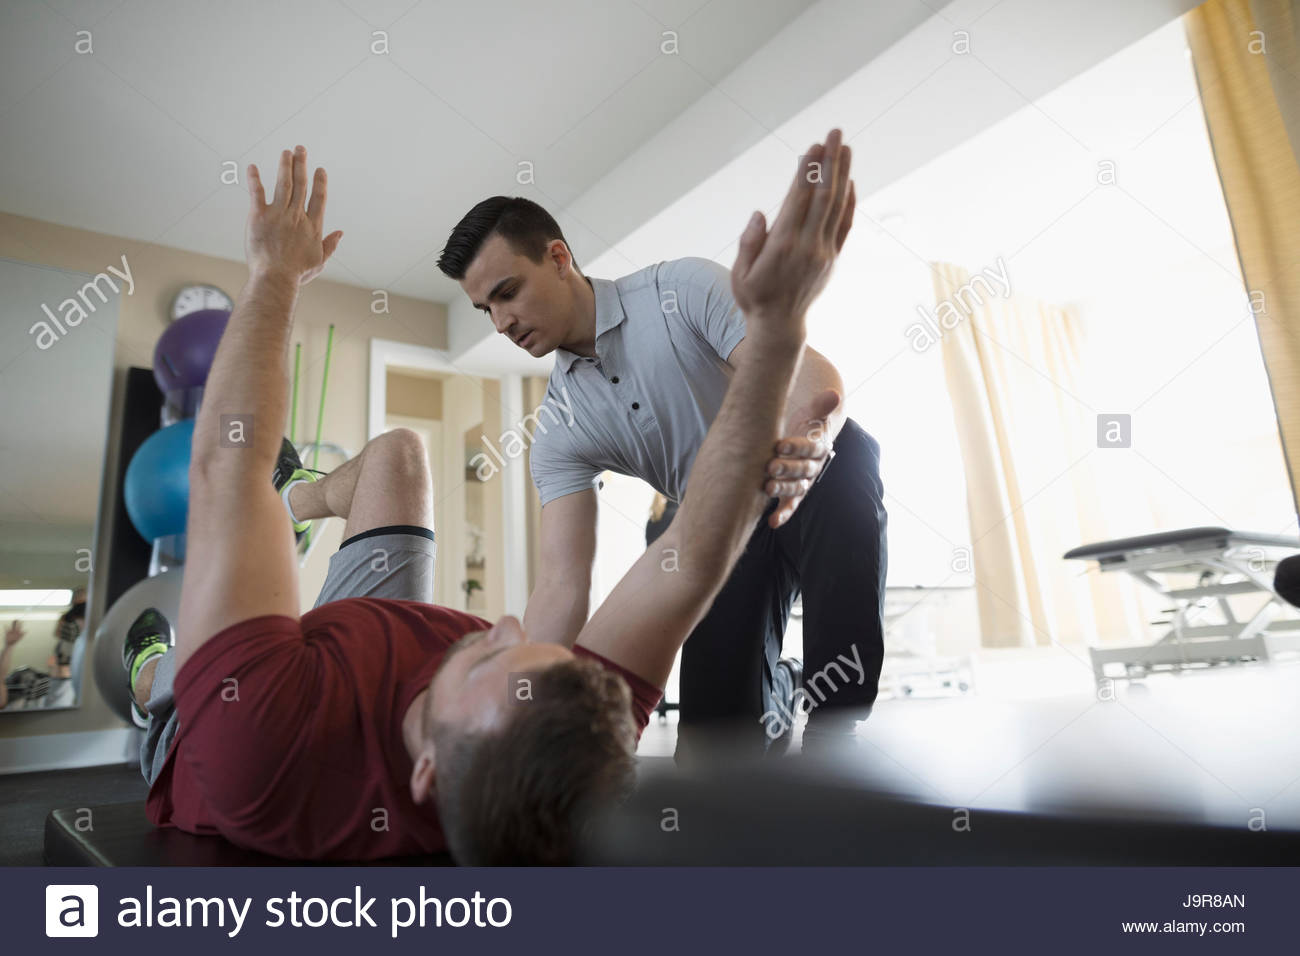 Male physiotherapist stretching client in clinic gym - Stock Image